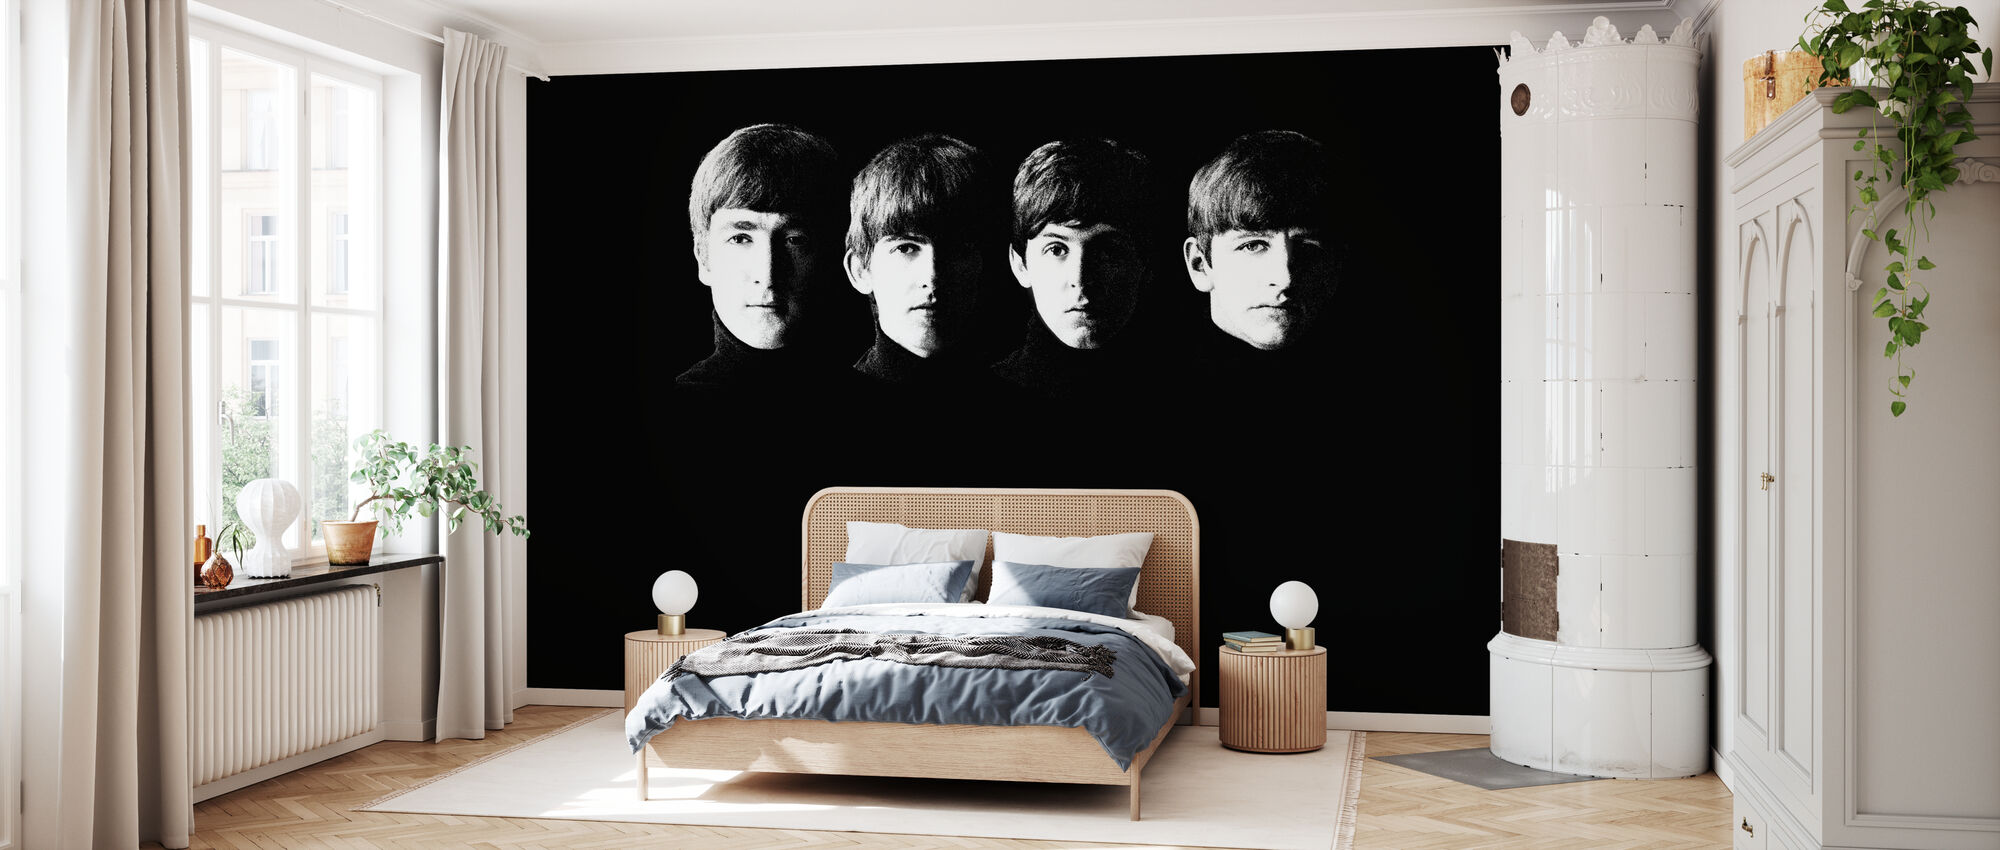 Beatles - Grainy - Wallpaper - Bedroom